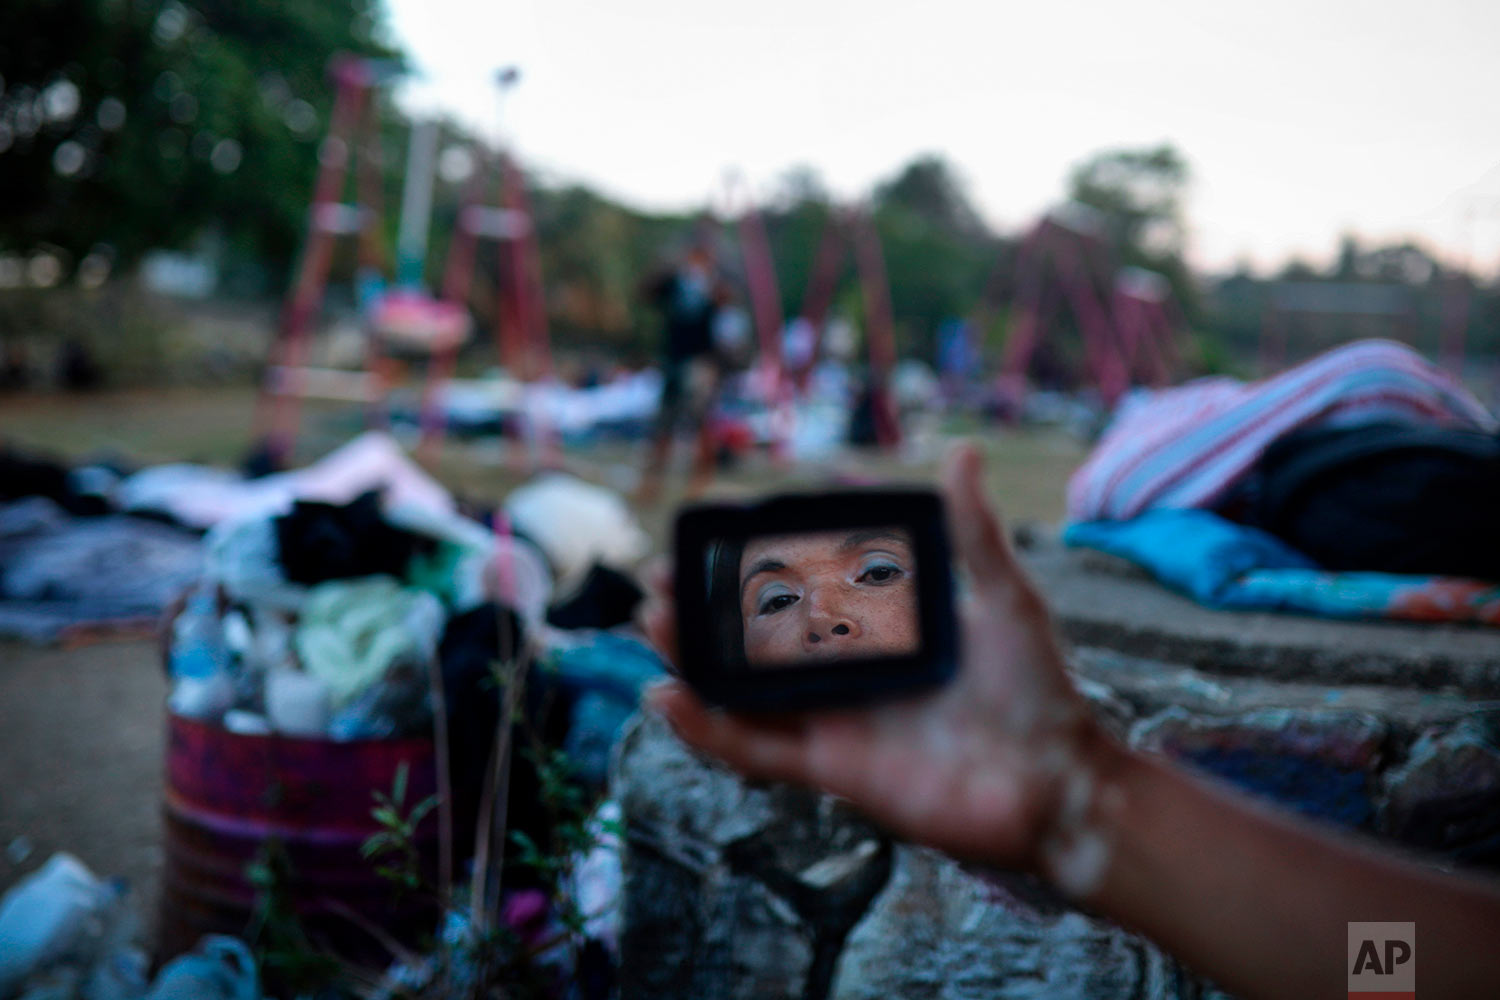 """A woman is reflected in a mirror as she gets ready for the day, as Central American migrants traveling with the annual """"Stations of the Cross"""" caravan wake up at a sports club in Matias Romero, Oaxaca State, Mexico, April 3, 2018. The caravan of Central American migrants that angered U.S. President Donald Trump was sidelined at a sports field in southern Mexico with no means of reaching the border even as Trump tweeted another threat to Mexico Tuesday. (AP Photo/Felix Marquez)"""